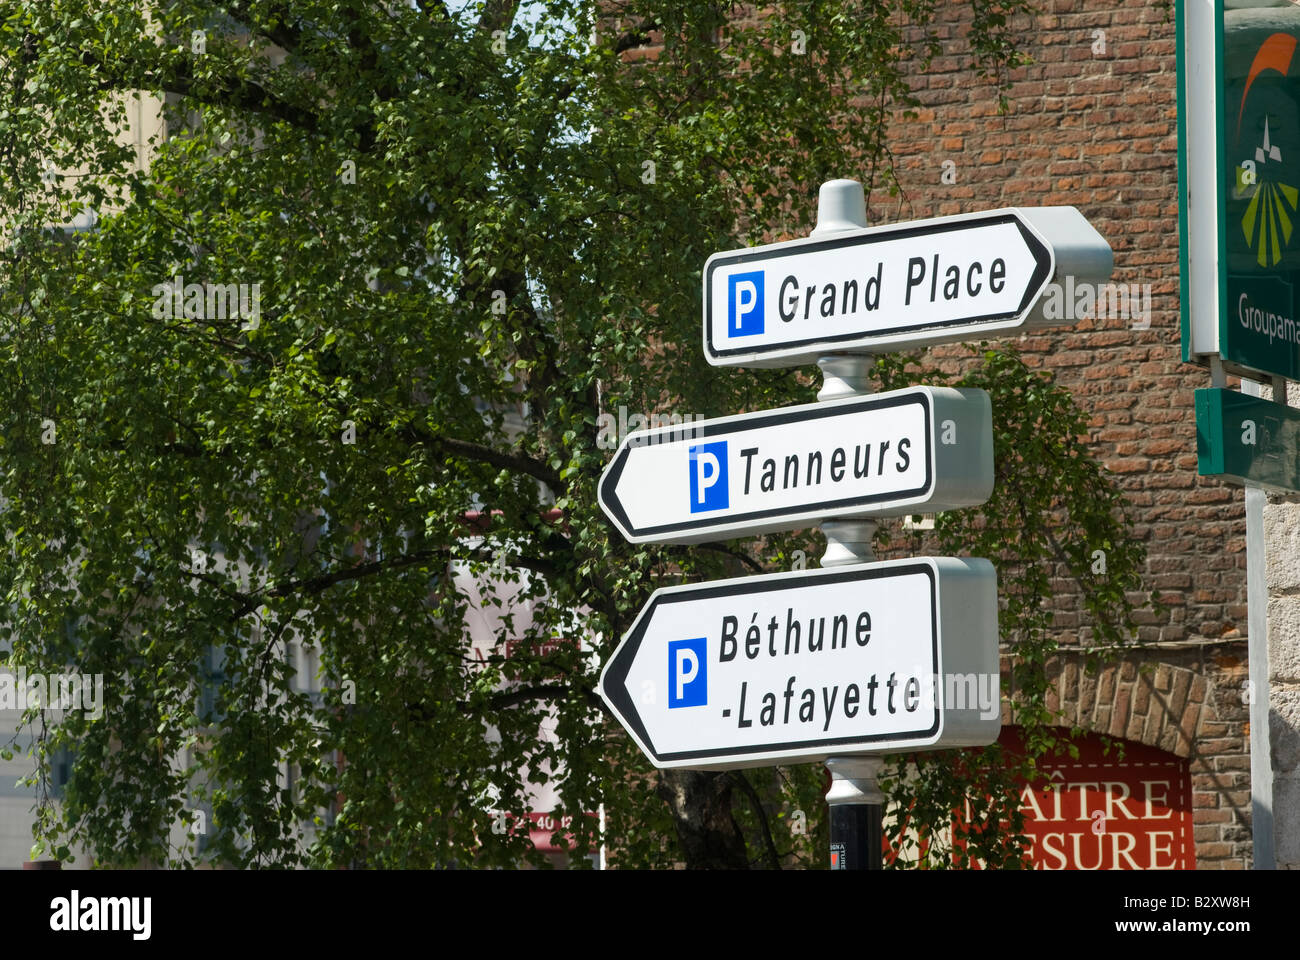 car park signs in the french town of lille france stock photo royalty free image 19030273 alamy. Black Bedroom Furniture Sets. Home Design Ideas